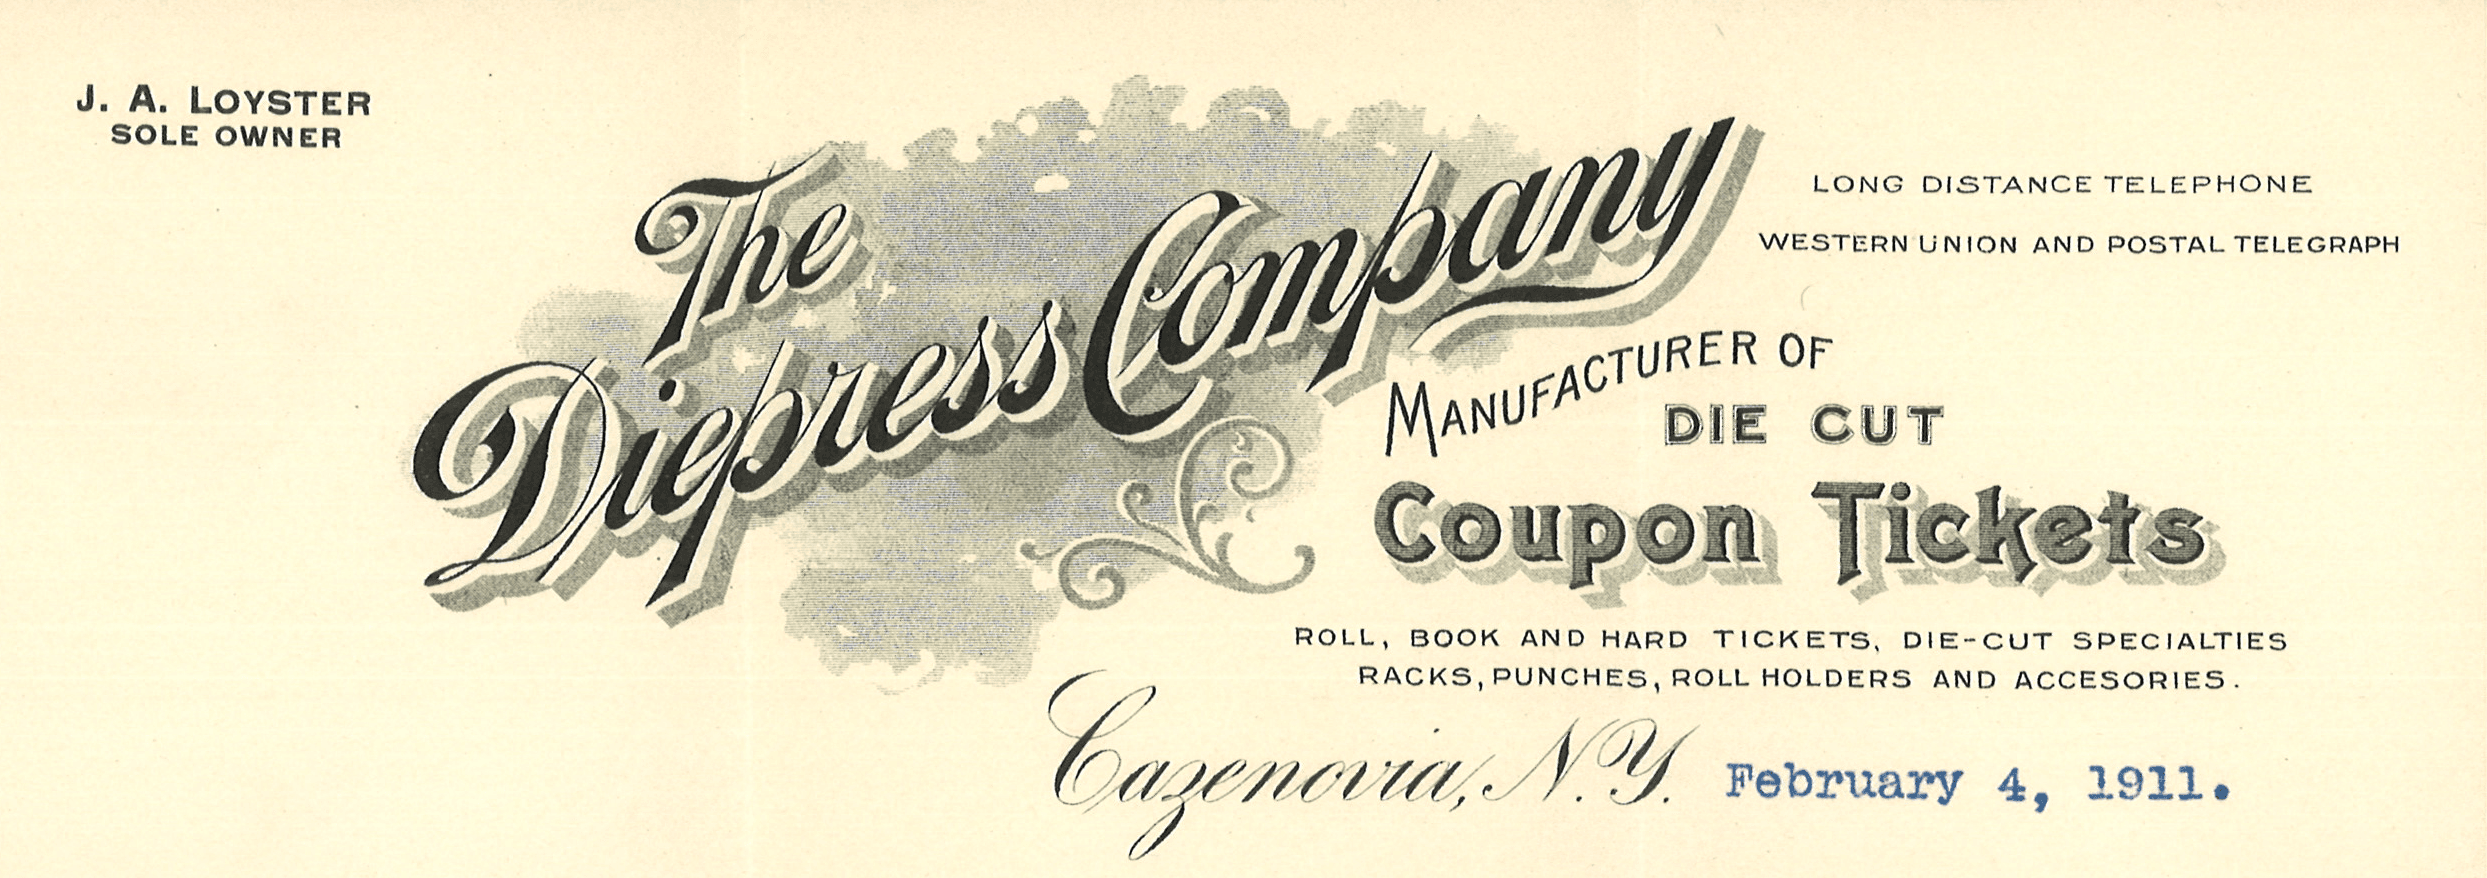 Diepress Co Letterhead - Circa 1911